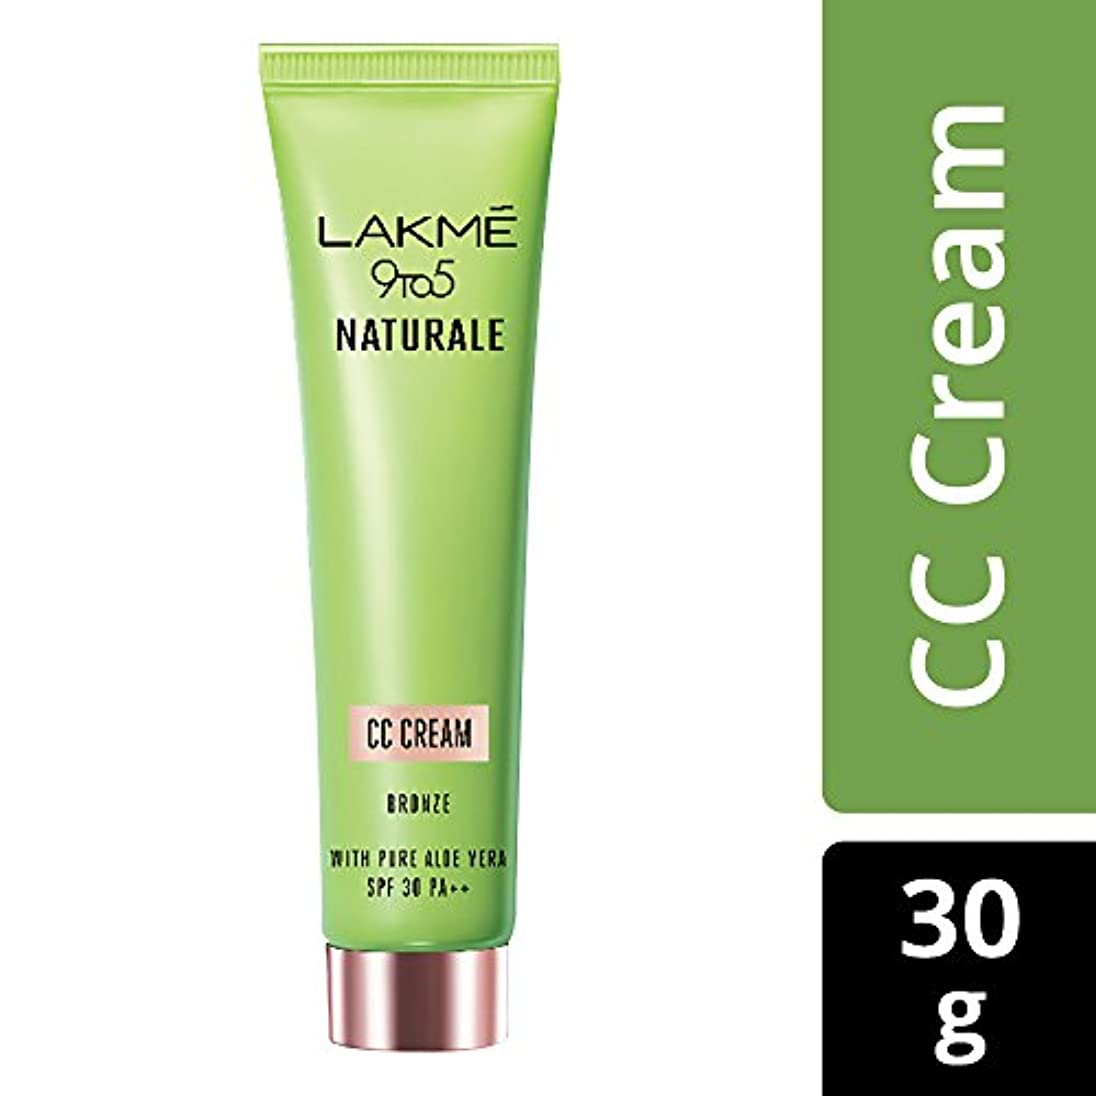 ハム主張するアカデミーLakme 9 to 5 Naturale CC Cream, Bronze, 30g